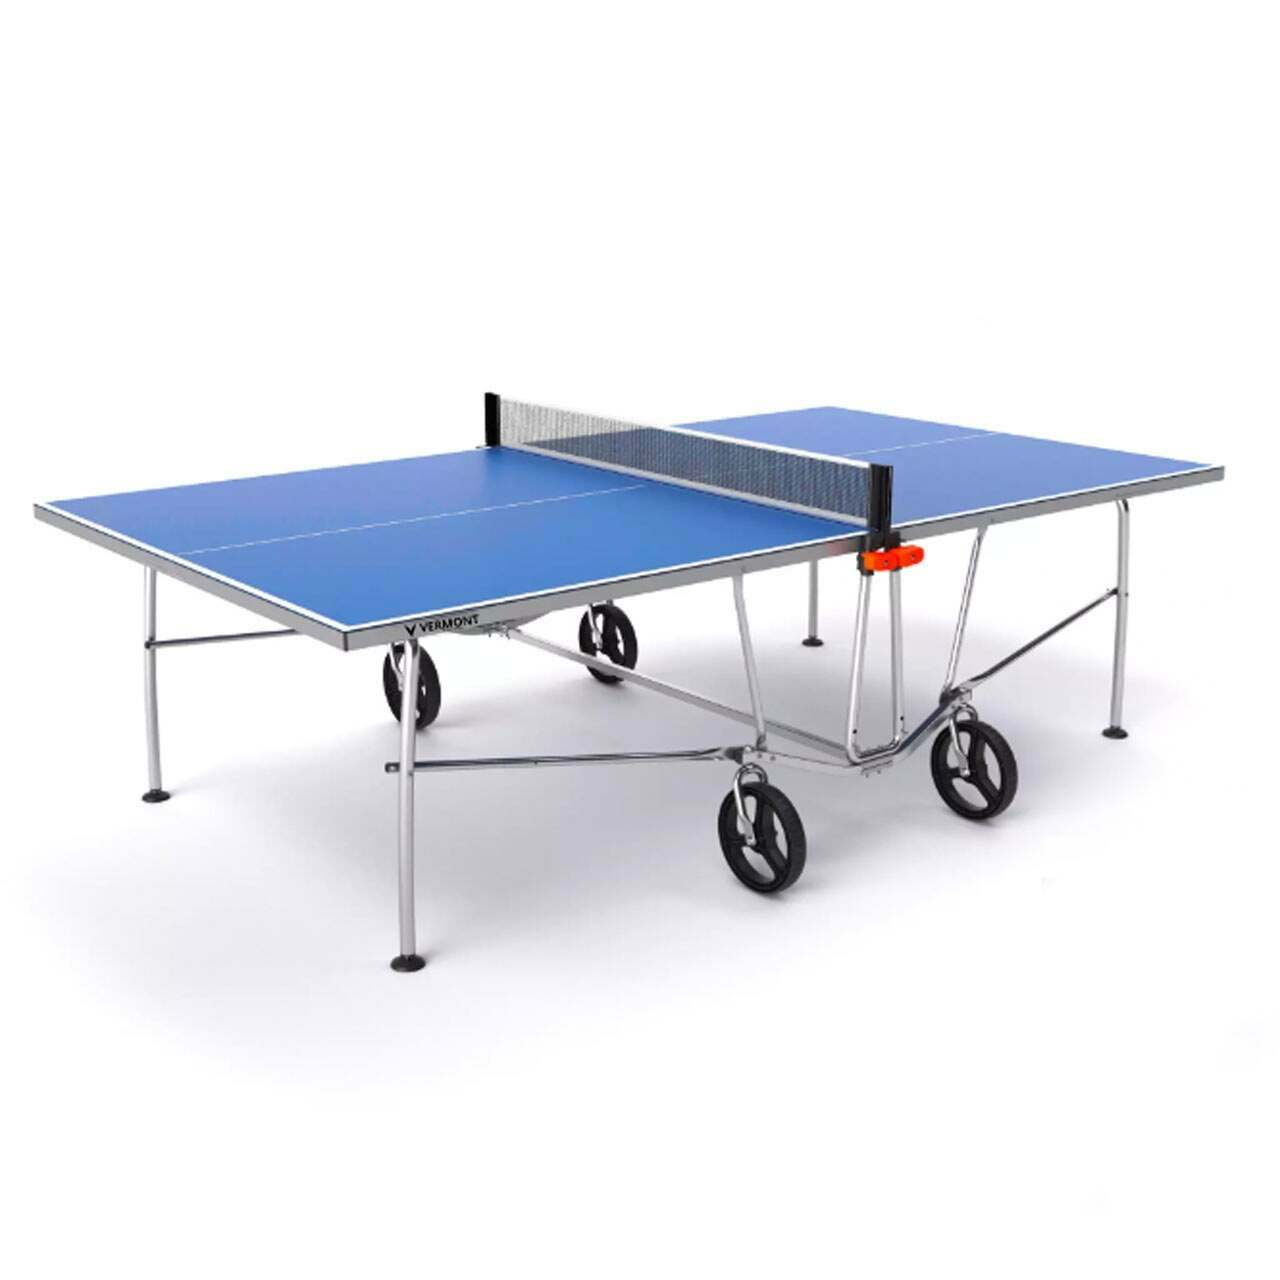 Vermont TS100 Outdoor Table Tennis Table [Table Only]